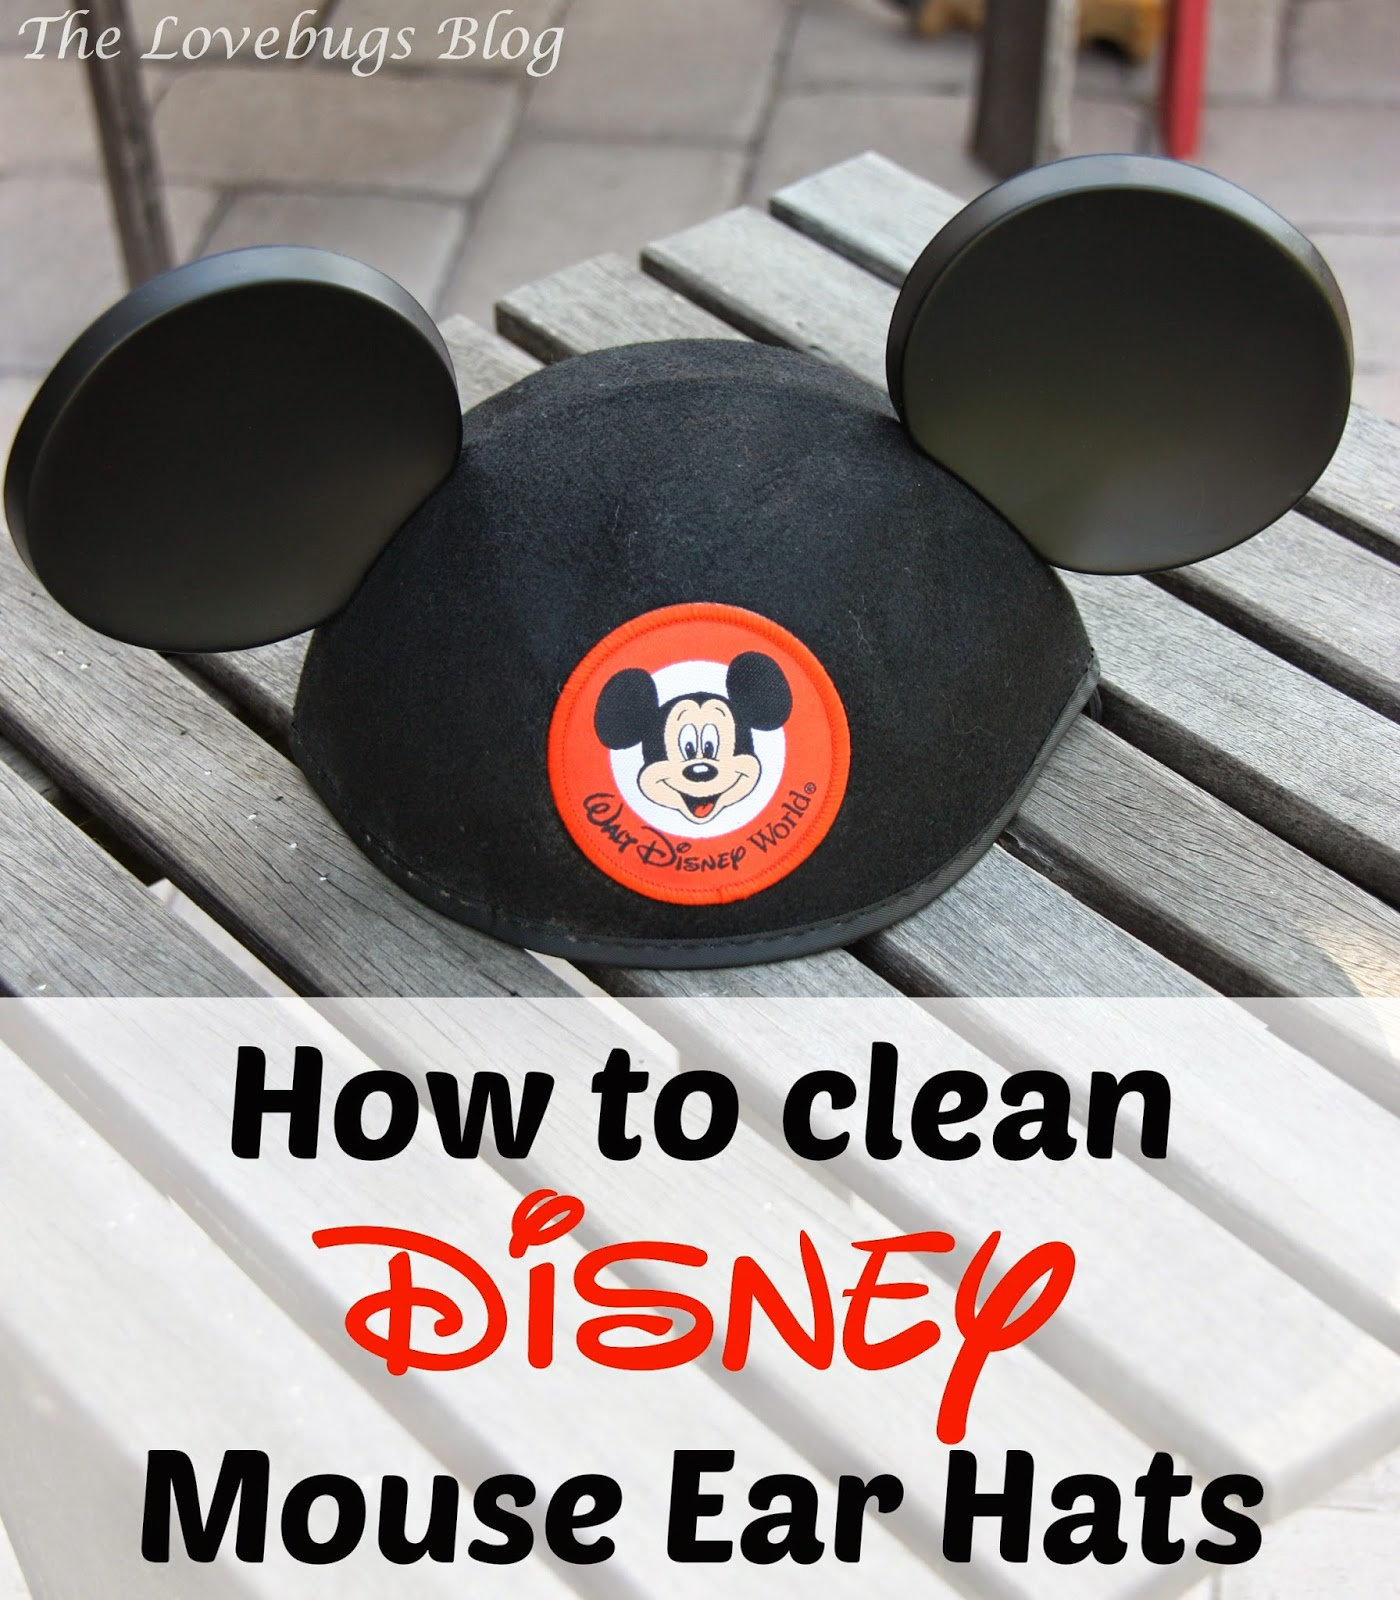 How to clean Disney Mouse Ears